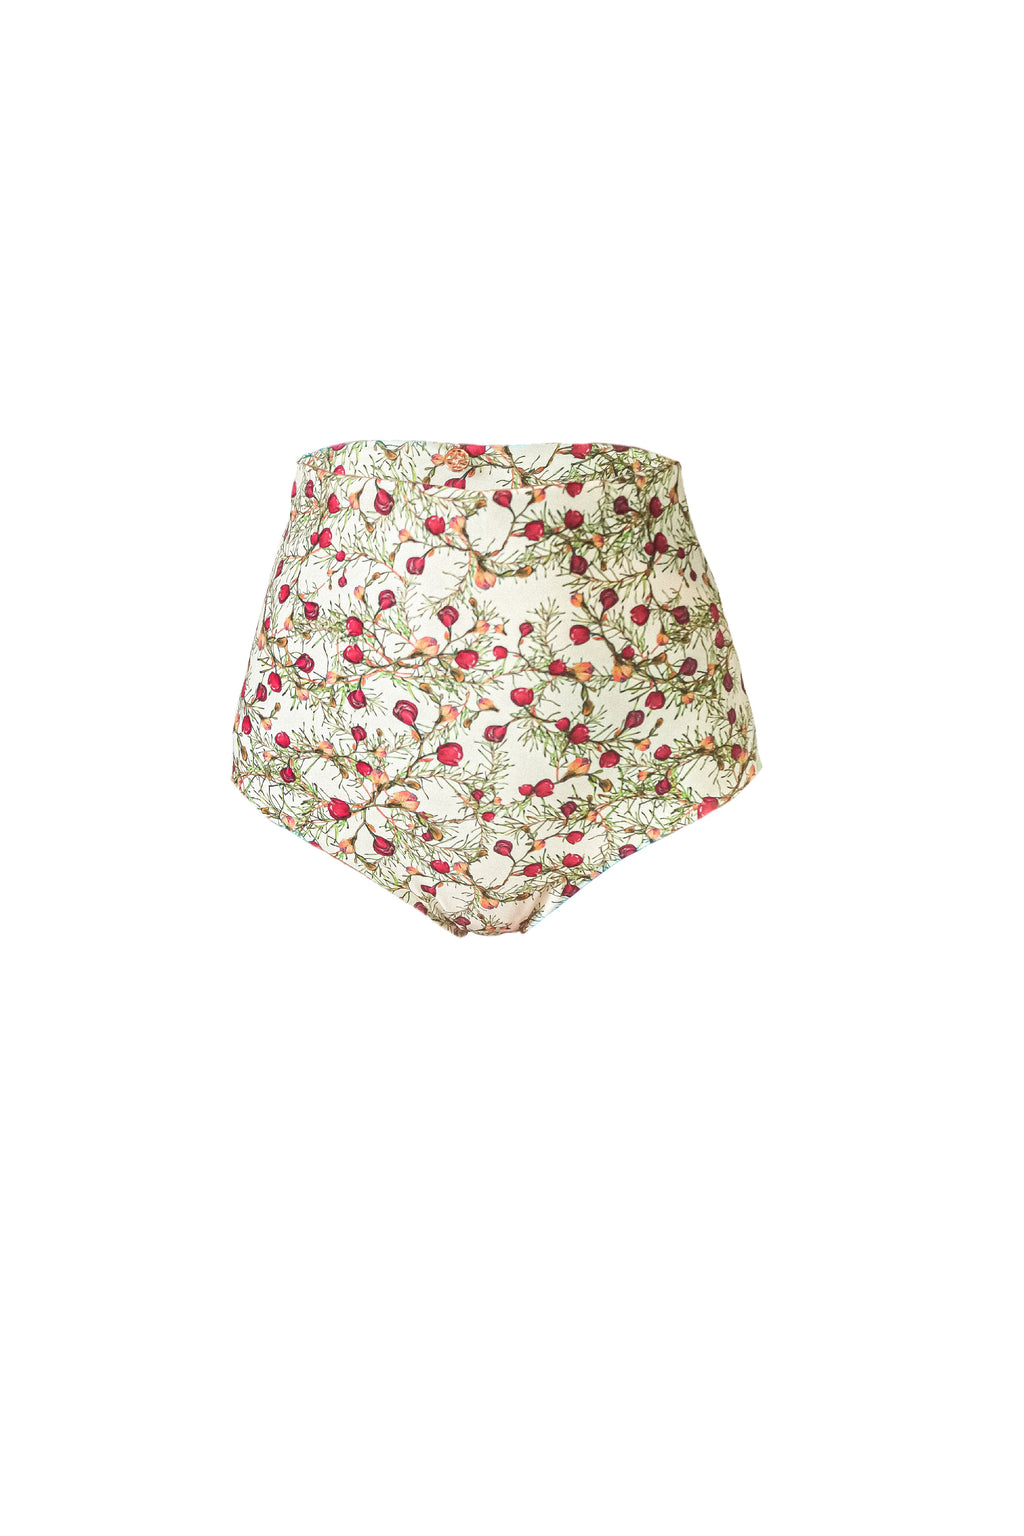 PEARLY Rosemary SUPER HIGH WAISTED panty